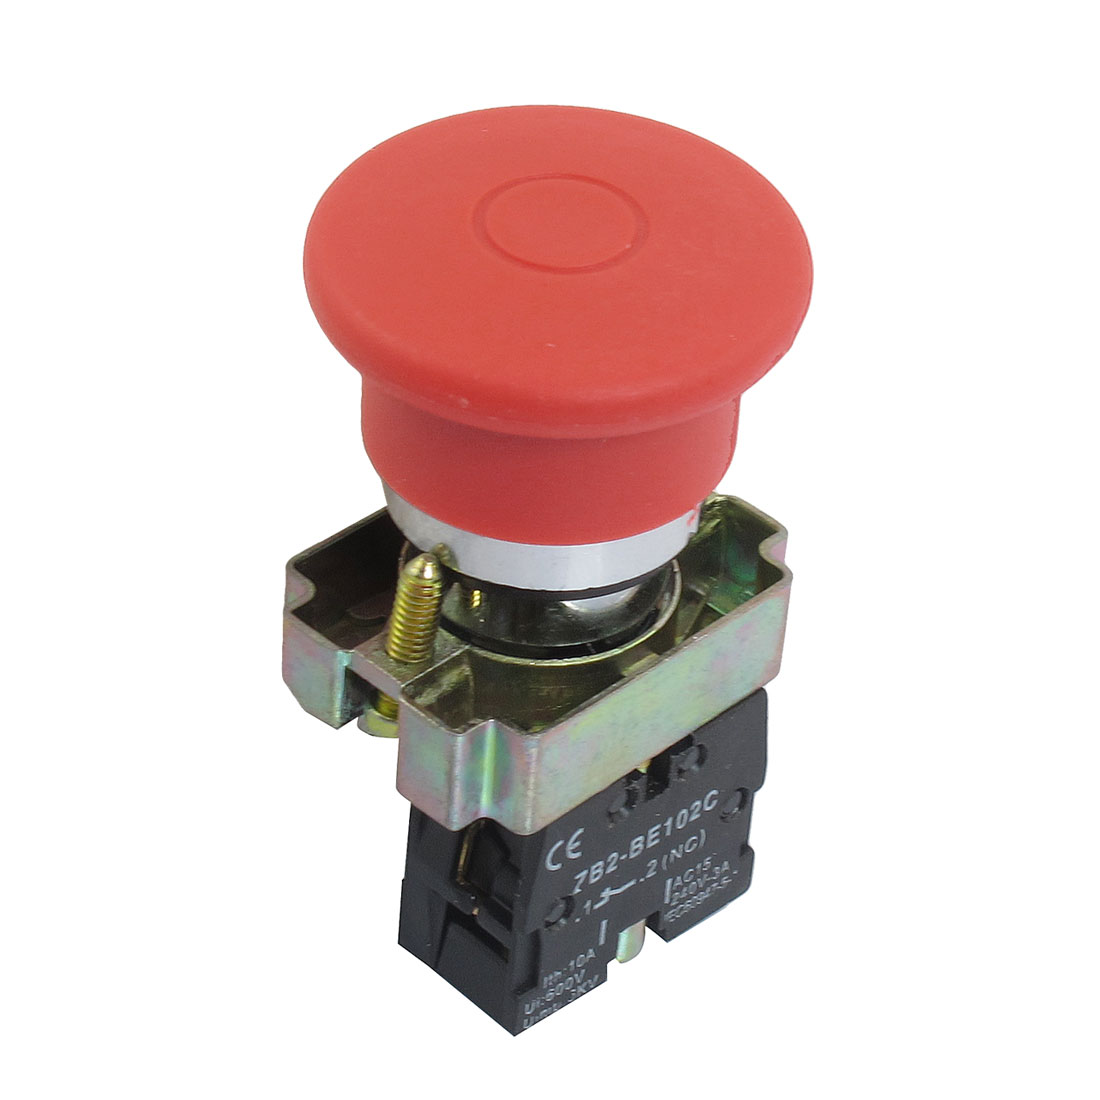 22mm NC Red Mushroom Emergency Stop Push Button Switch 600V 10A ZB2-BE102C